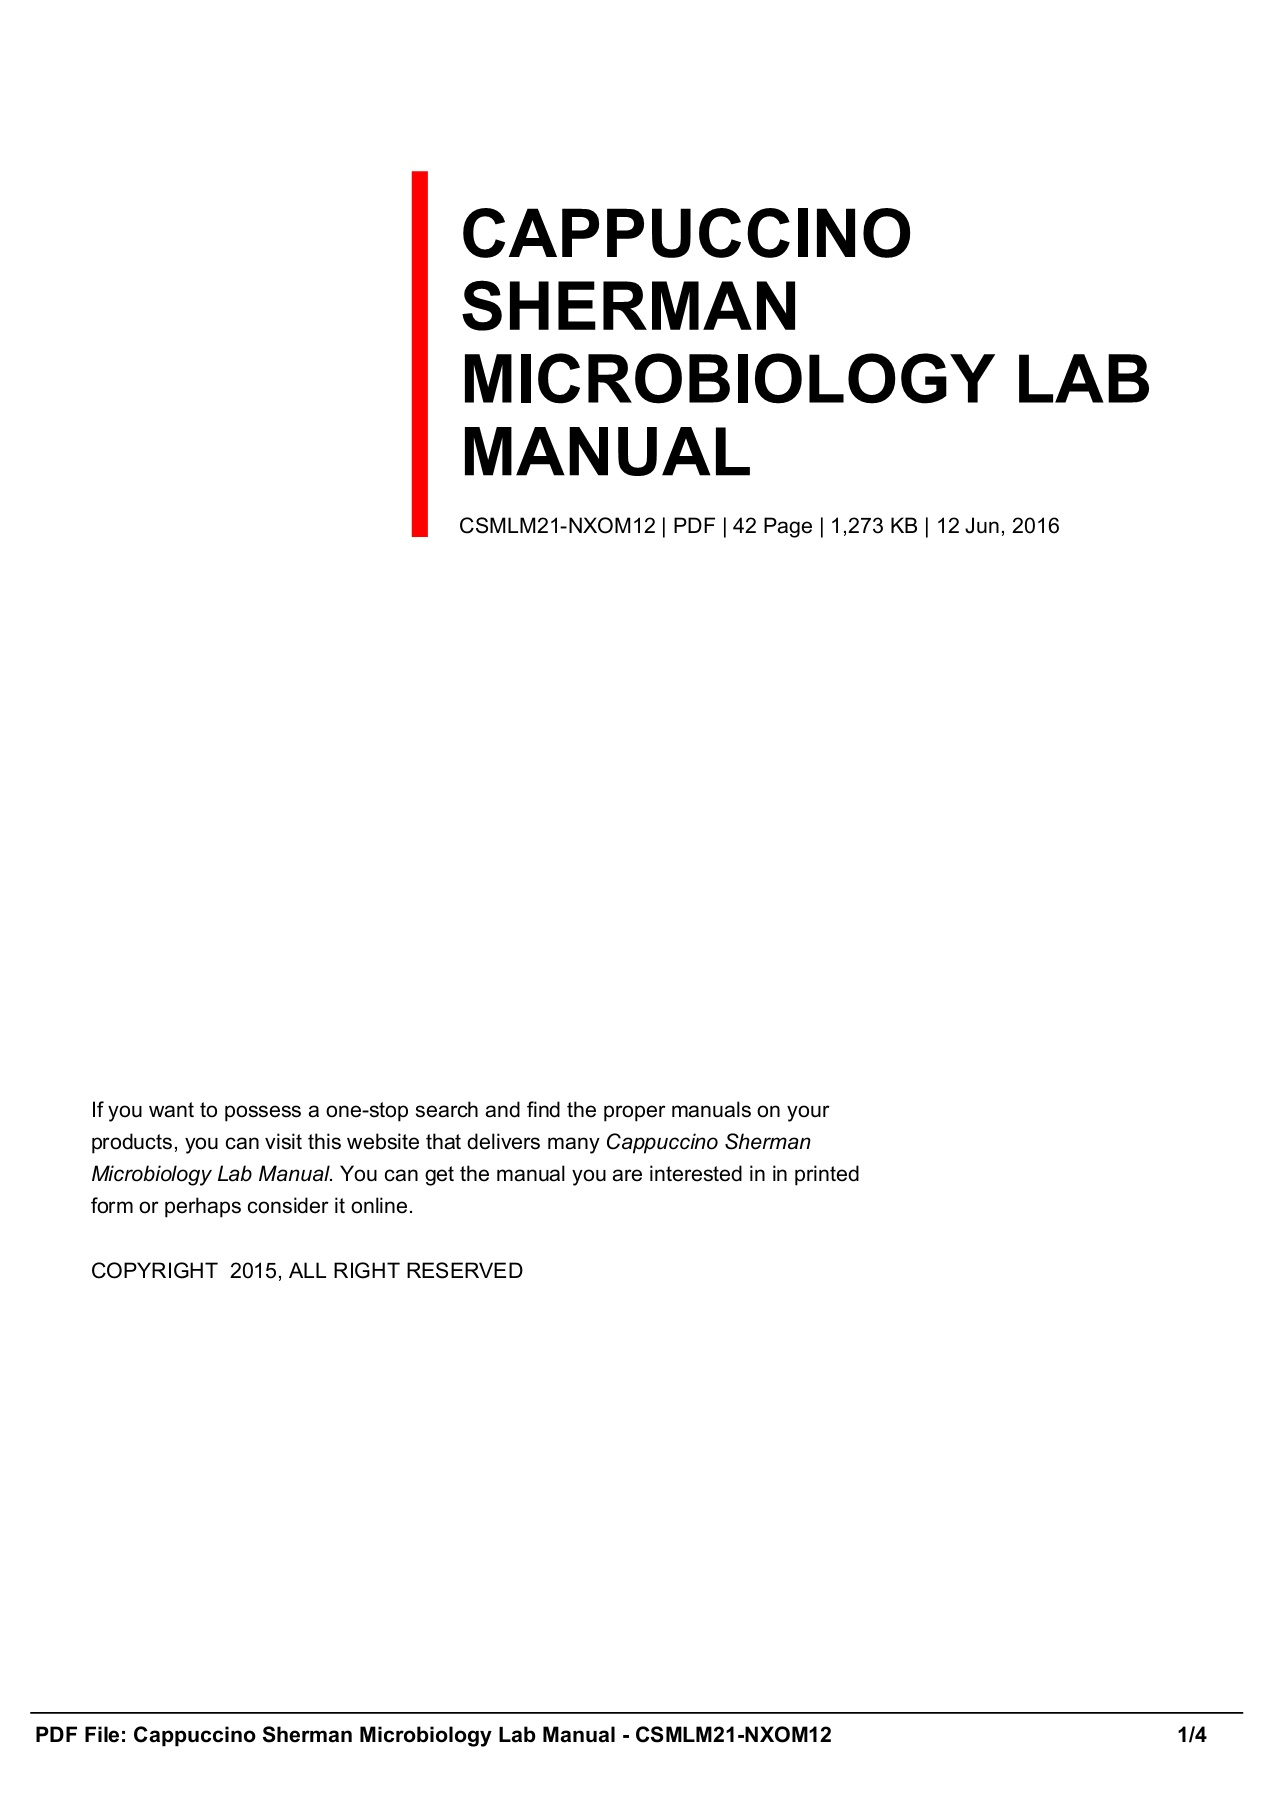 CAPPUCCINO SHERMAN MICROBIOLOGY LAB MANUAL CSMLM21-NXOM12 Pages 1